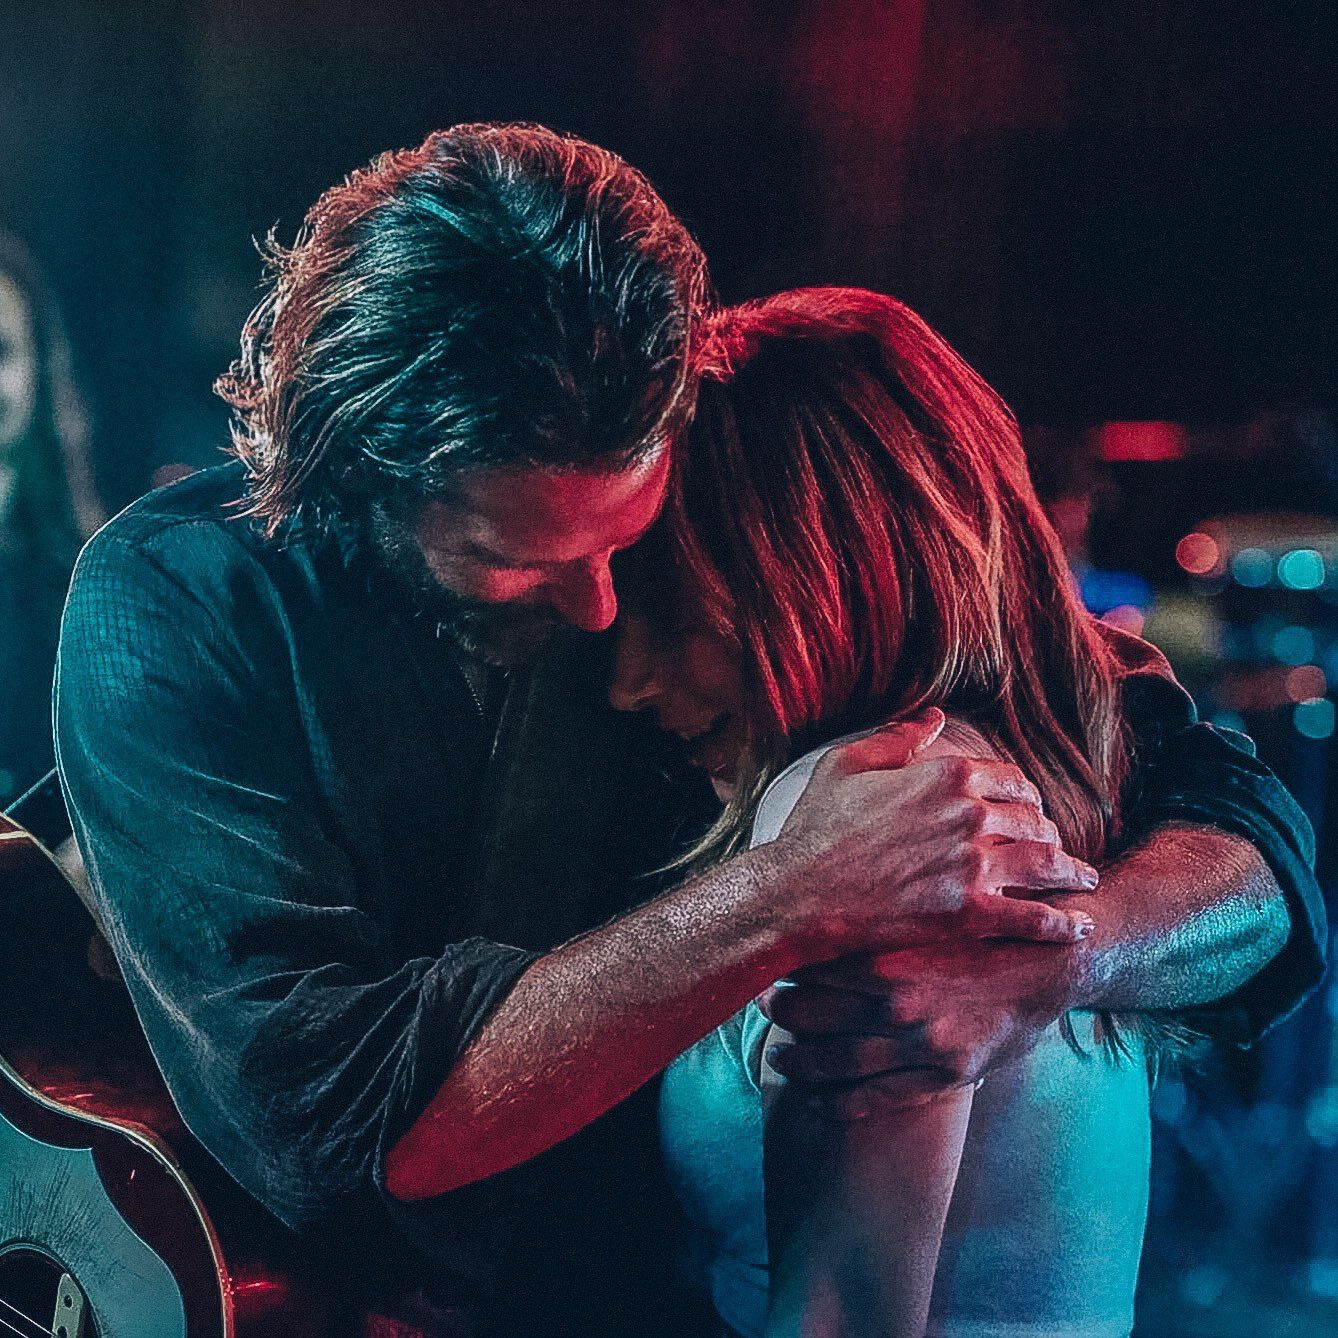 Bradley Cooper Lady Gaga A Star Is Born Film Stills Lady Gaga